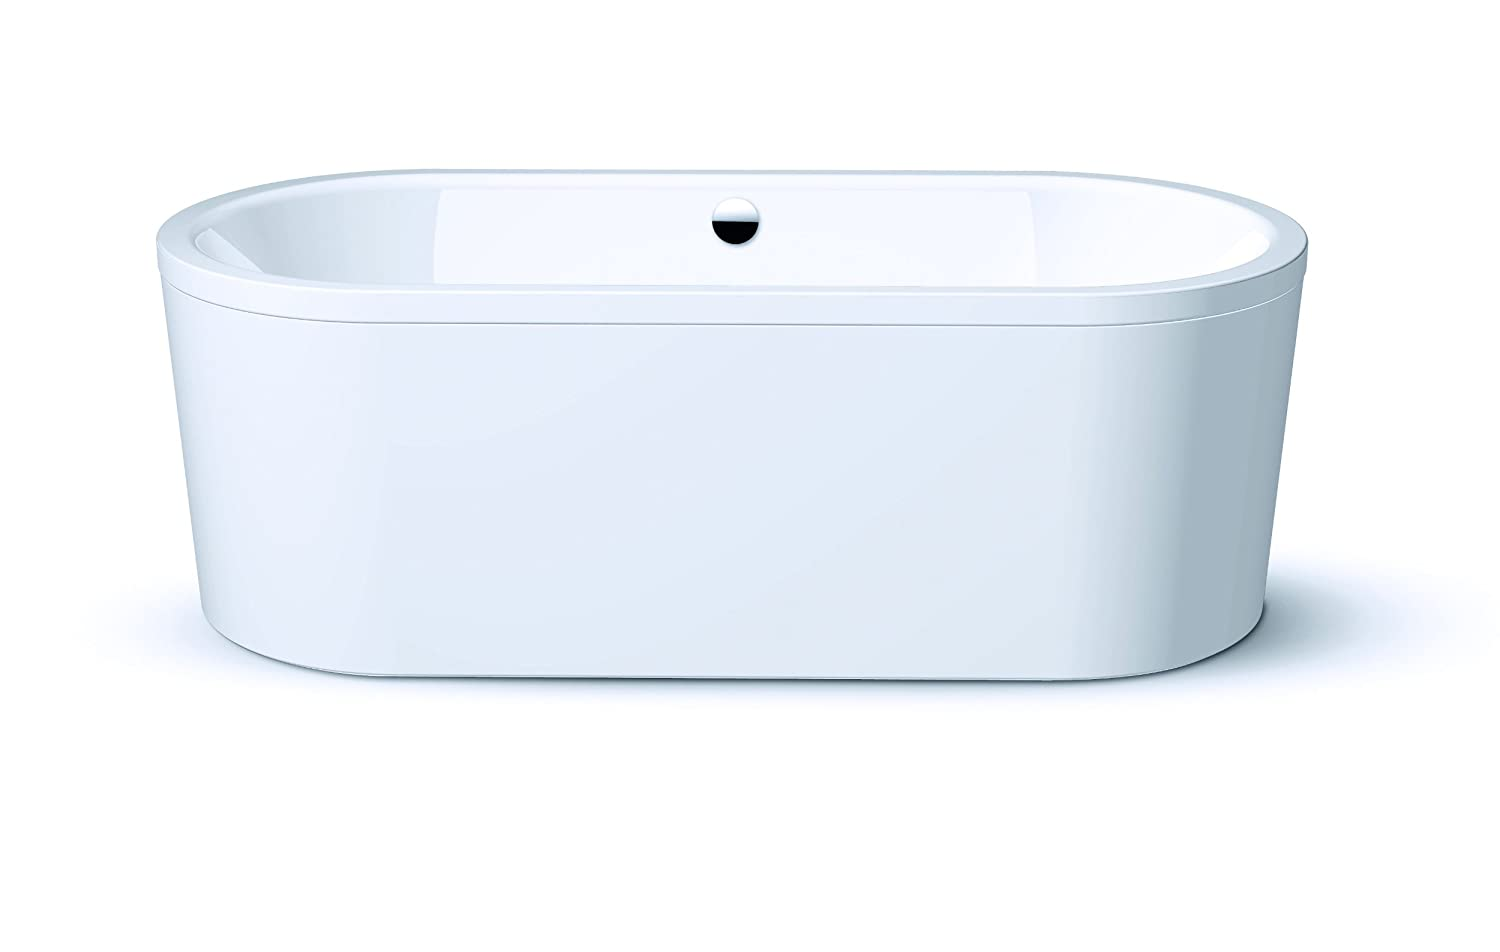 Kaldewei 128-7 Centro Duo Oval Bathtub with Moulded Panel, 70-7/8-by ...